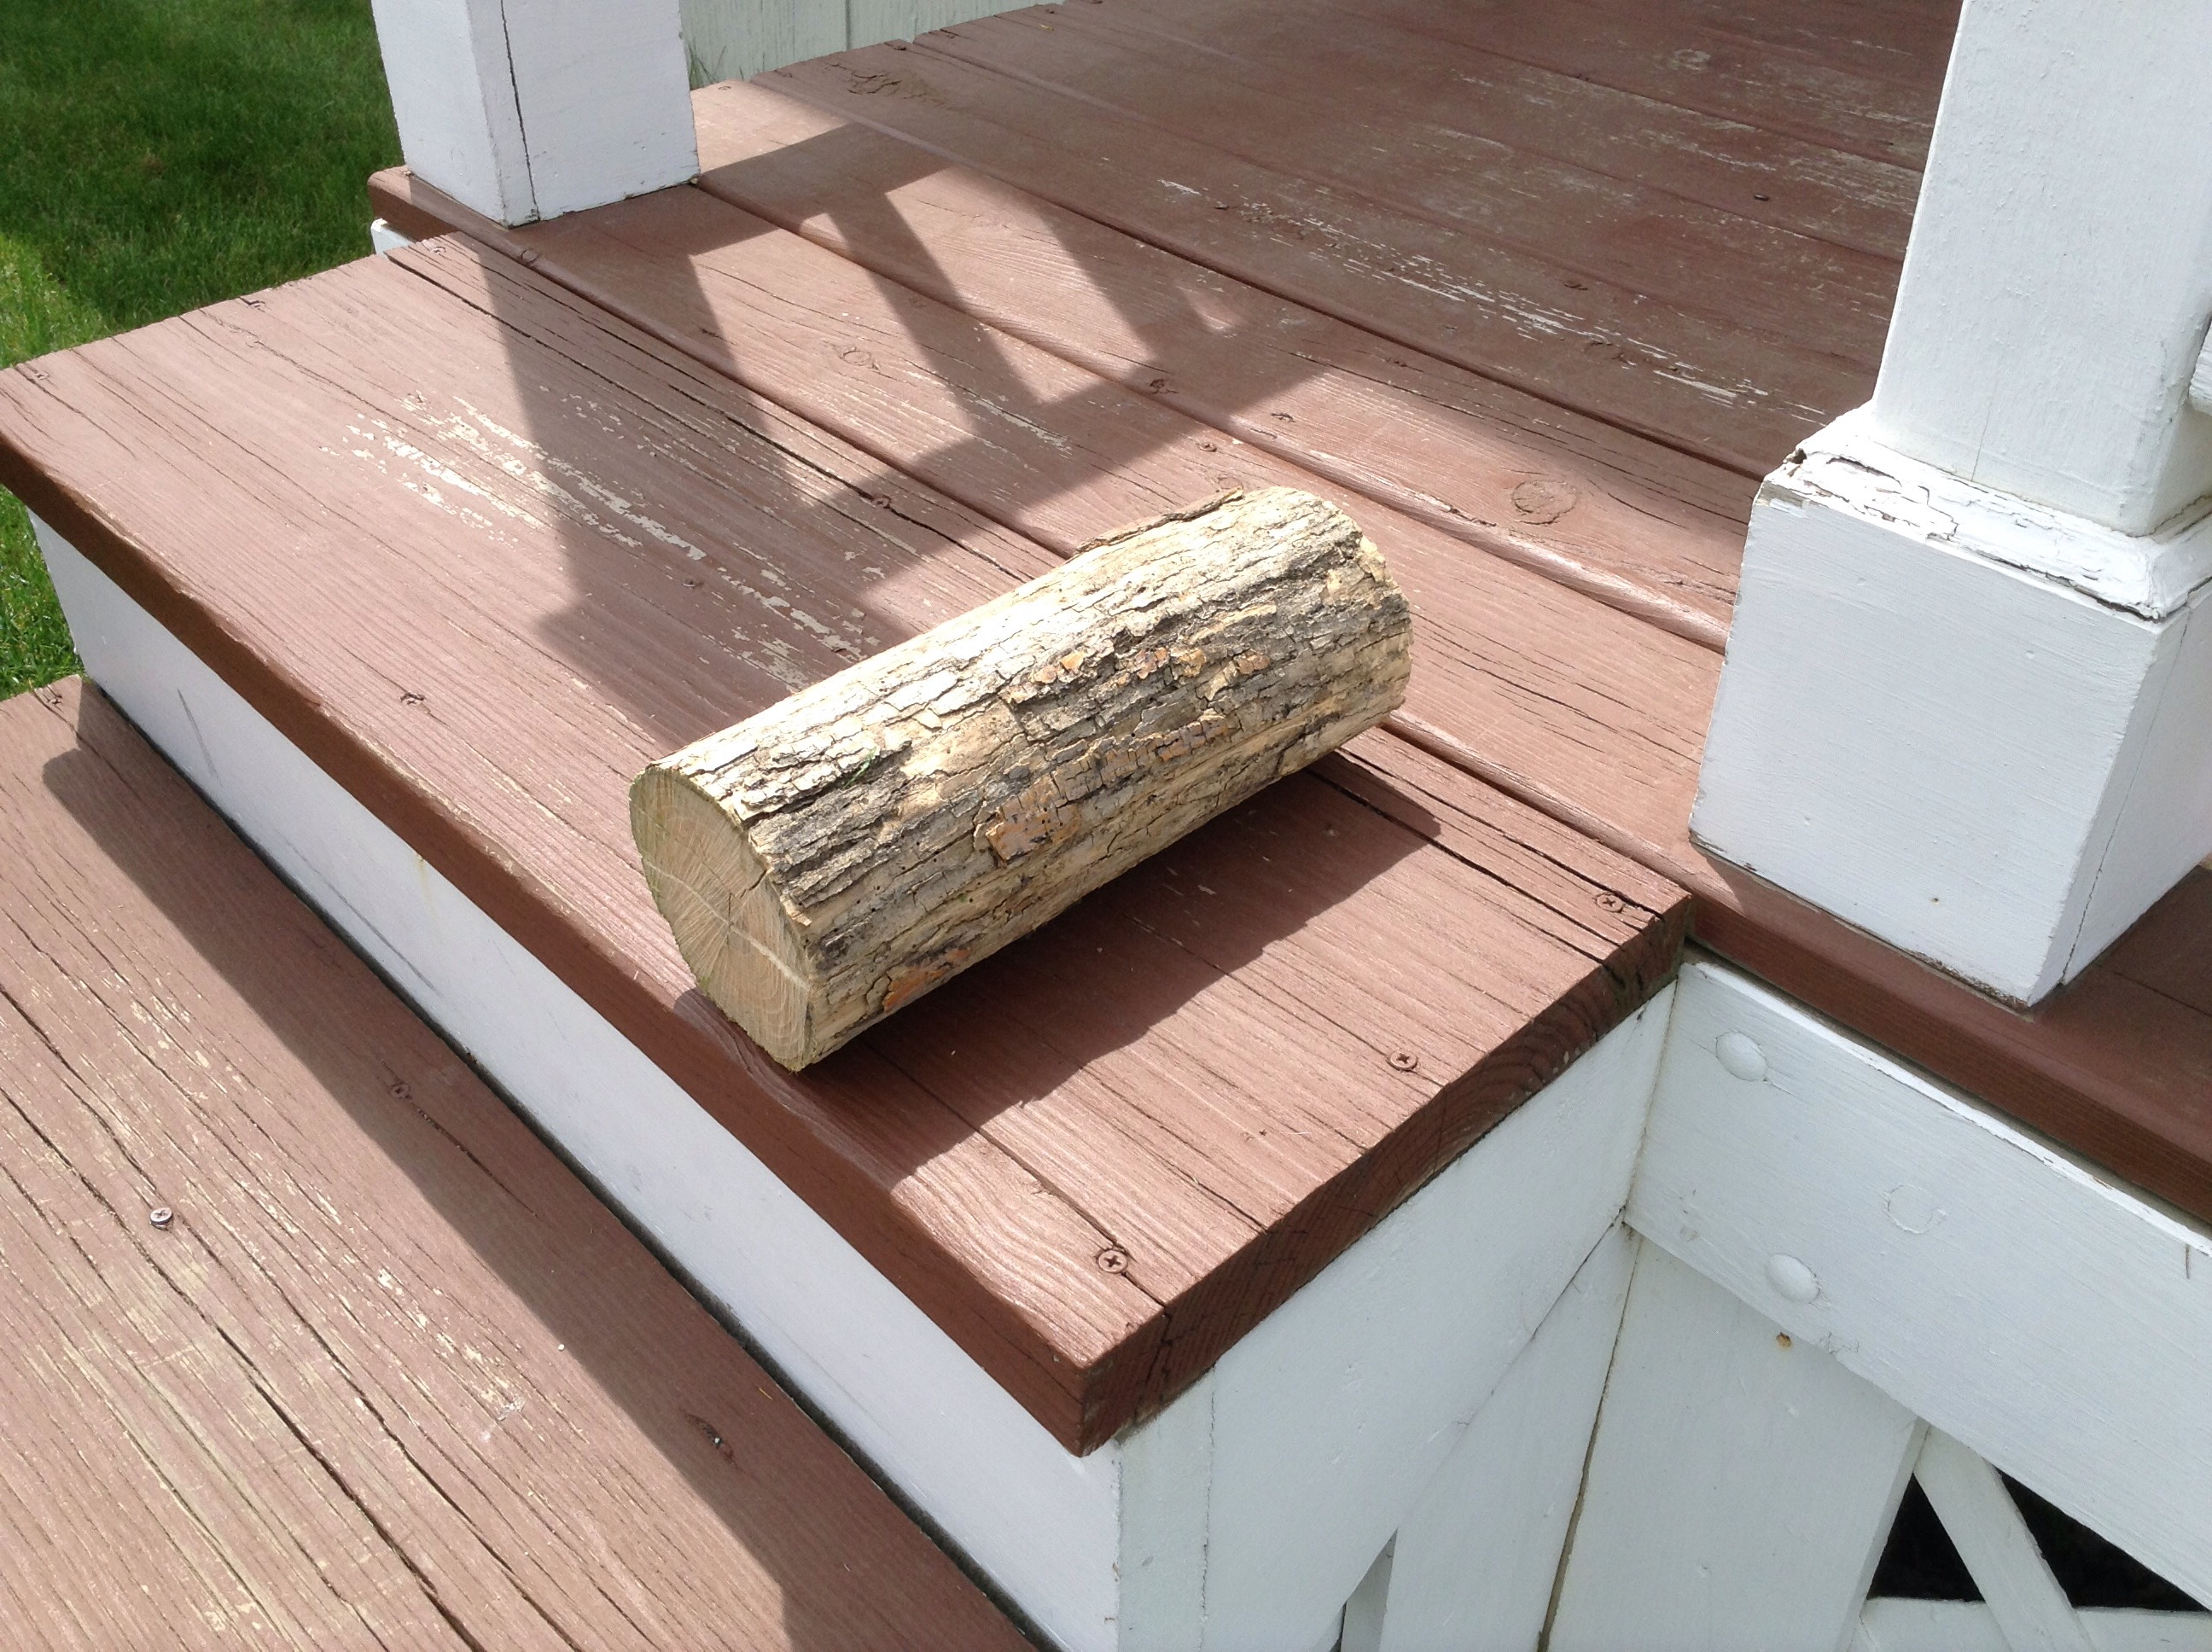 Picture of Hiding Place in a Log